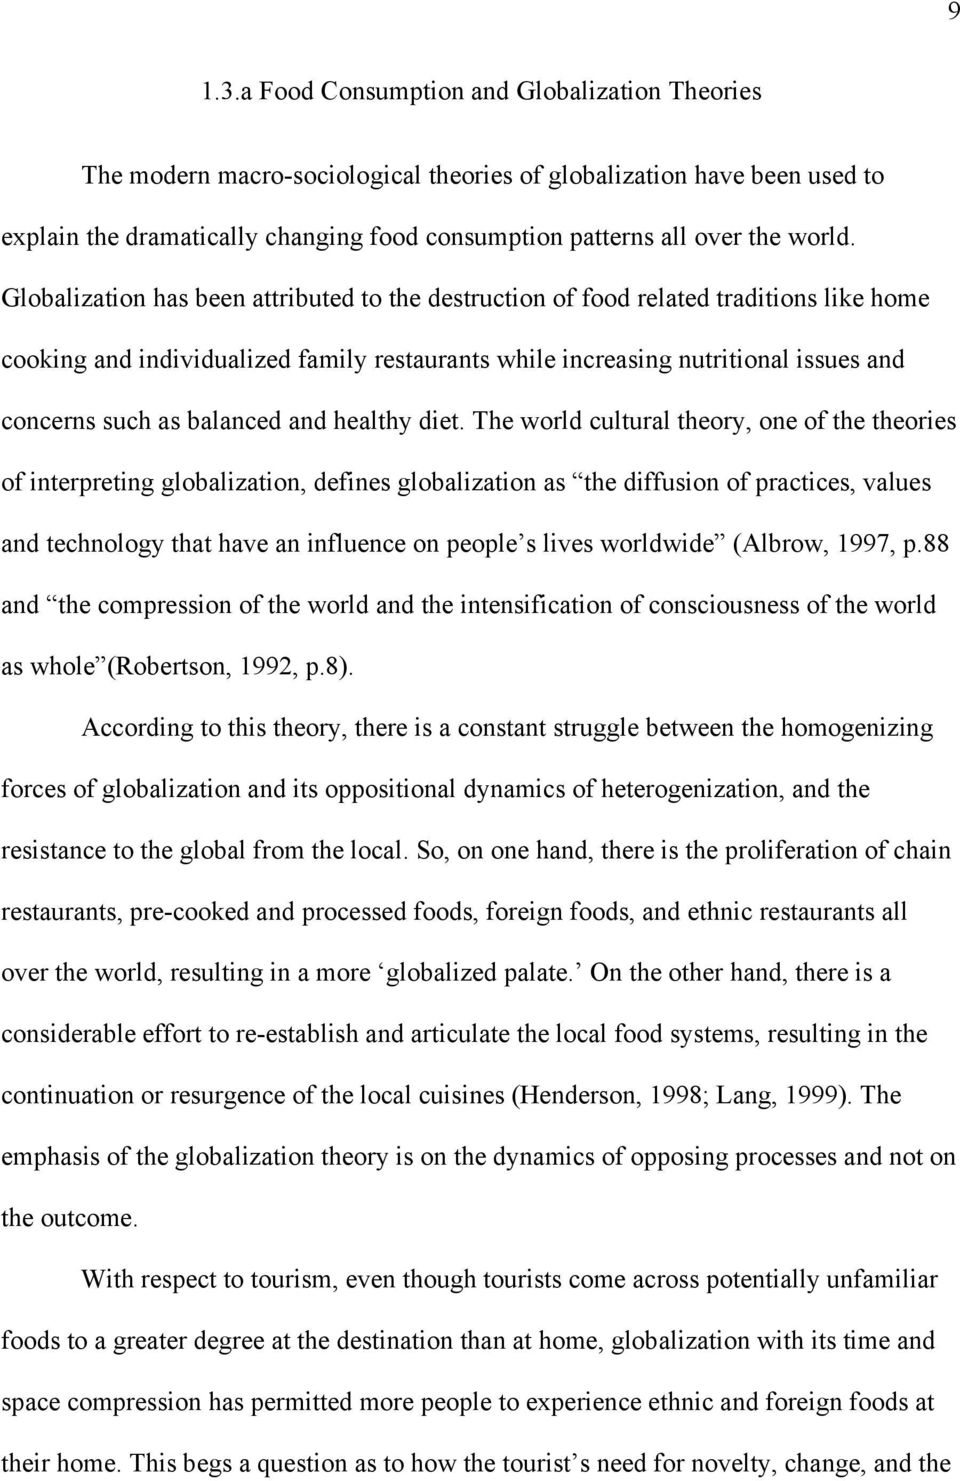 Globalization has been attributed to the destruction of food related traditions like home cooking and individualized family restaurants while increasing nutritional issues and concerns such as